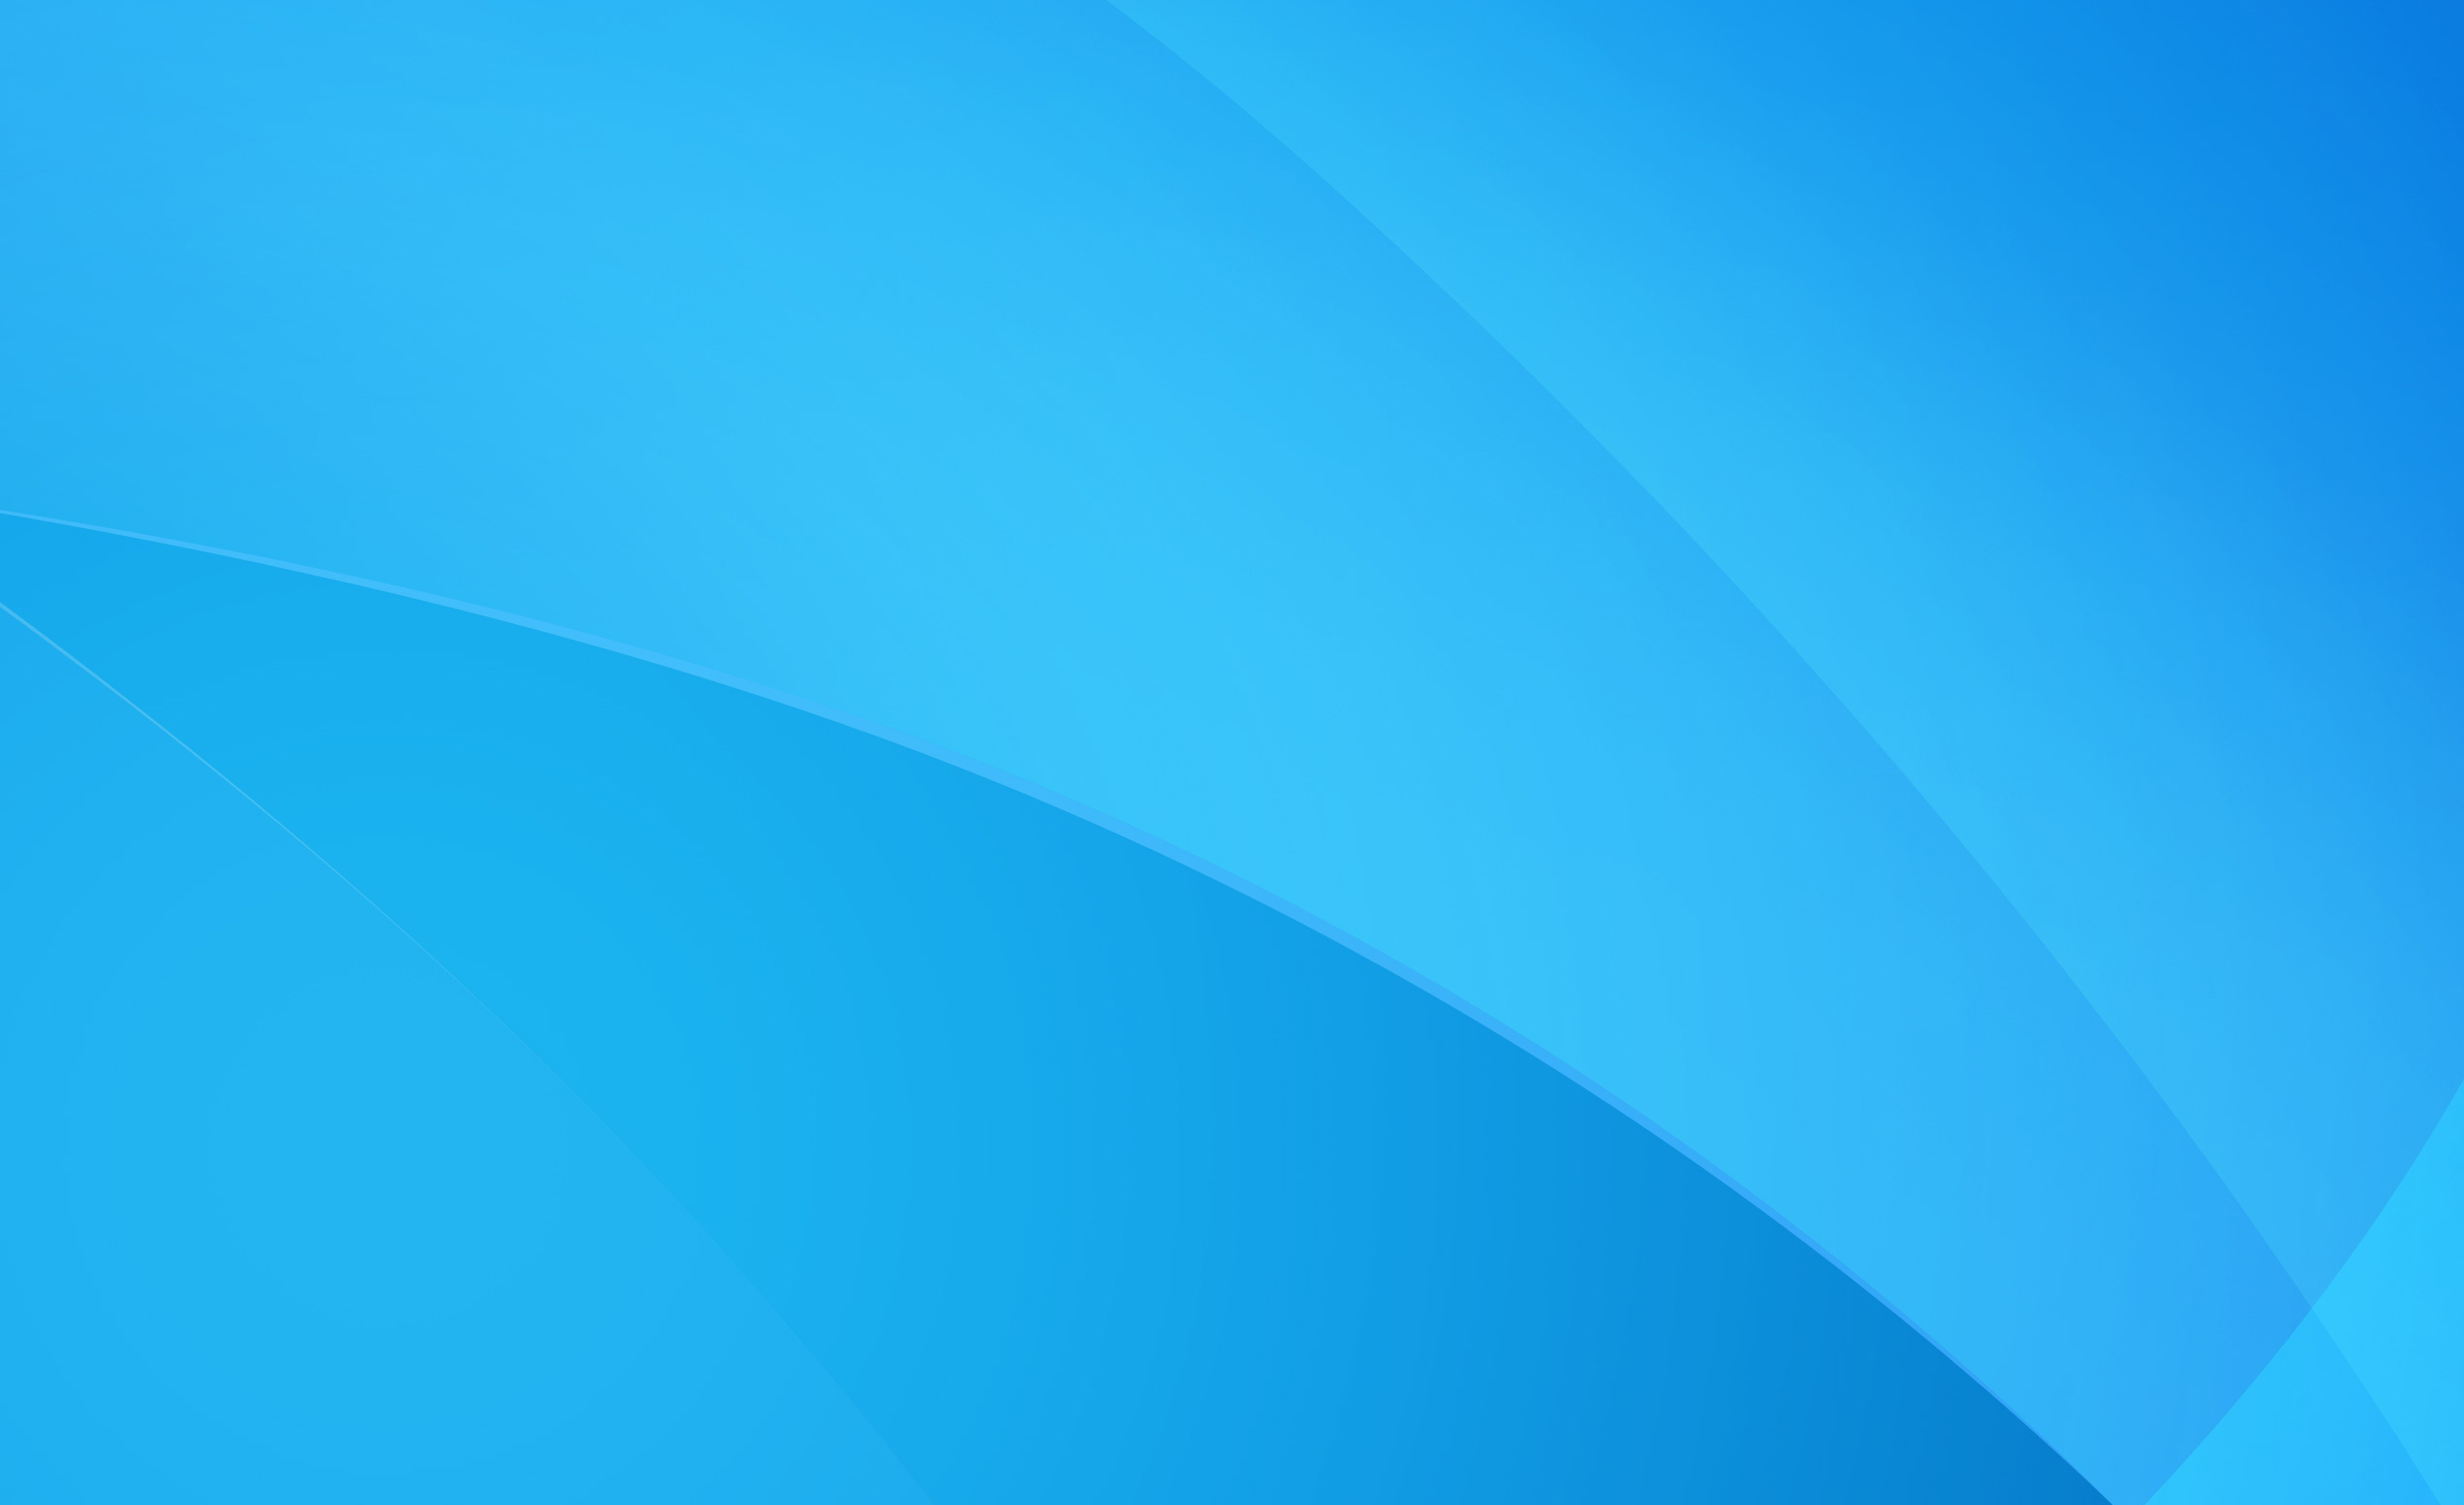 Attachment blue abstract background 2543x1553